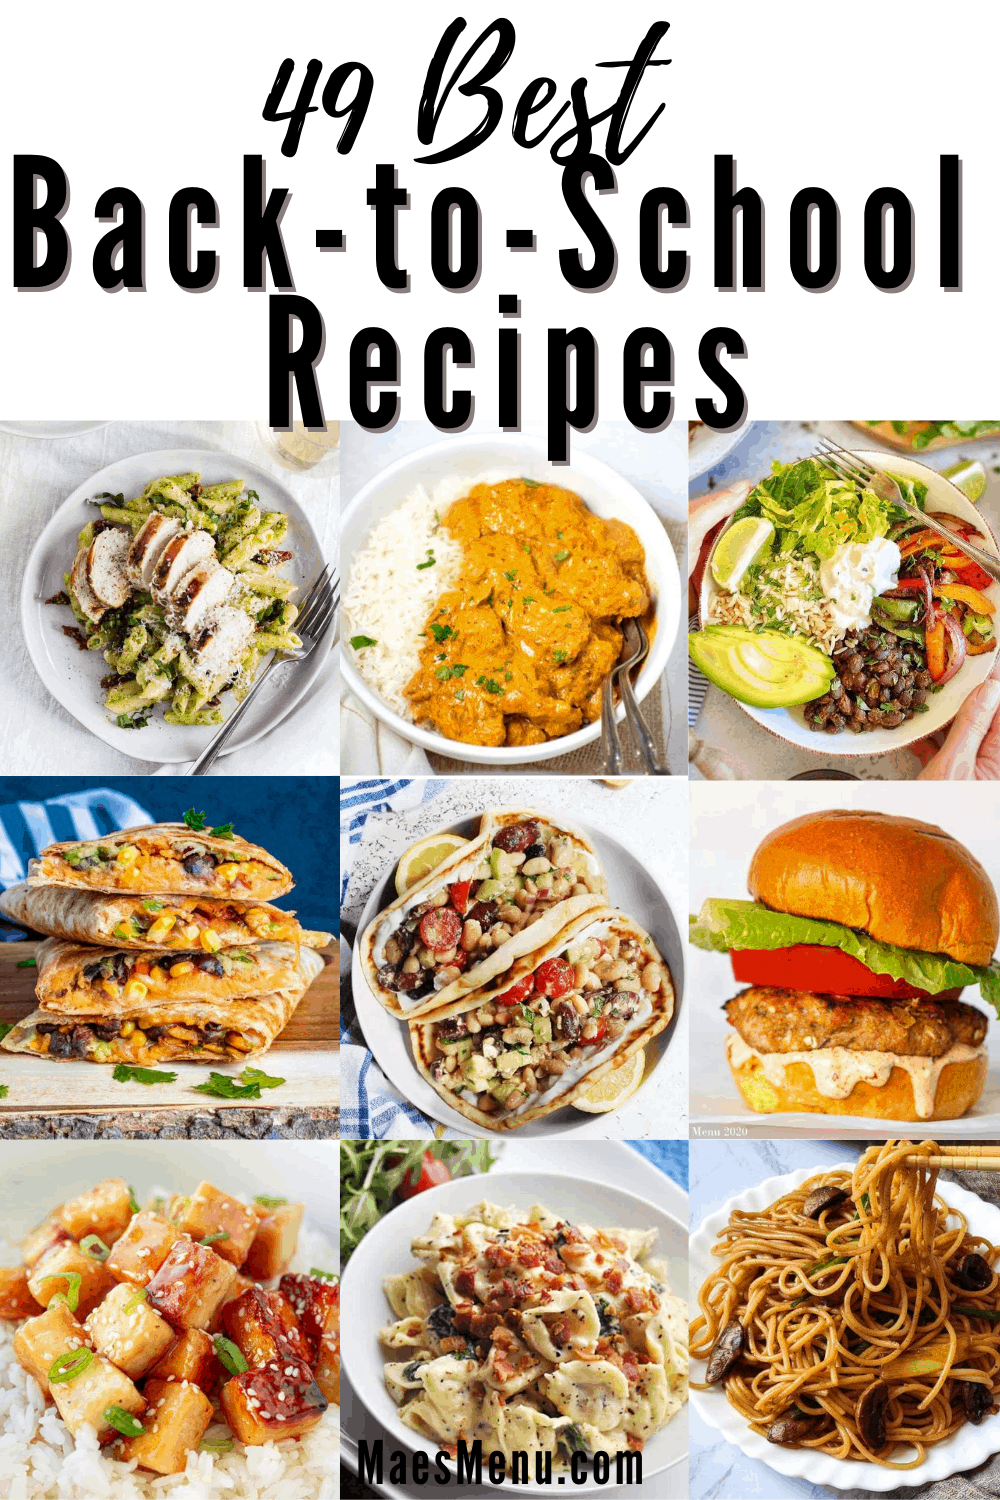 Pin for the 49 best back to school recipes. On the pin are 9 of the recipes.